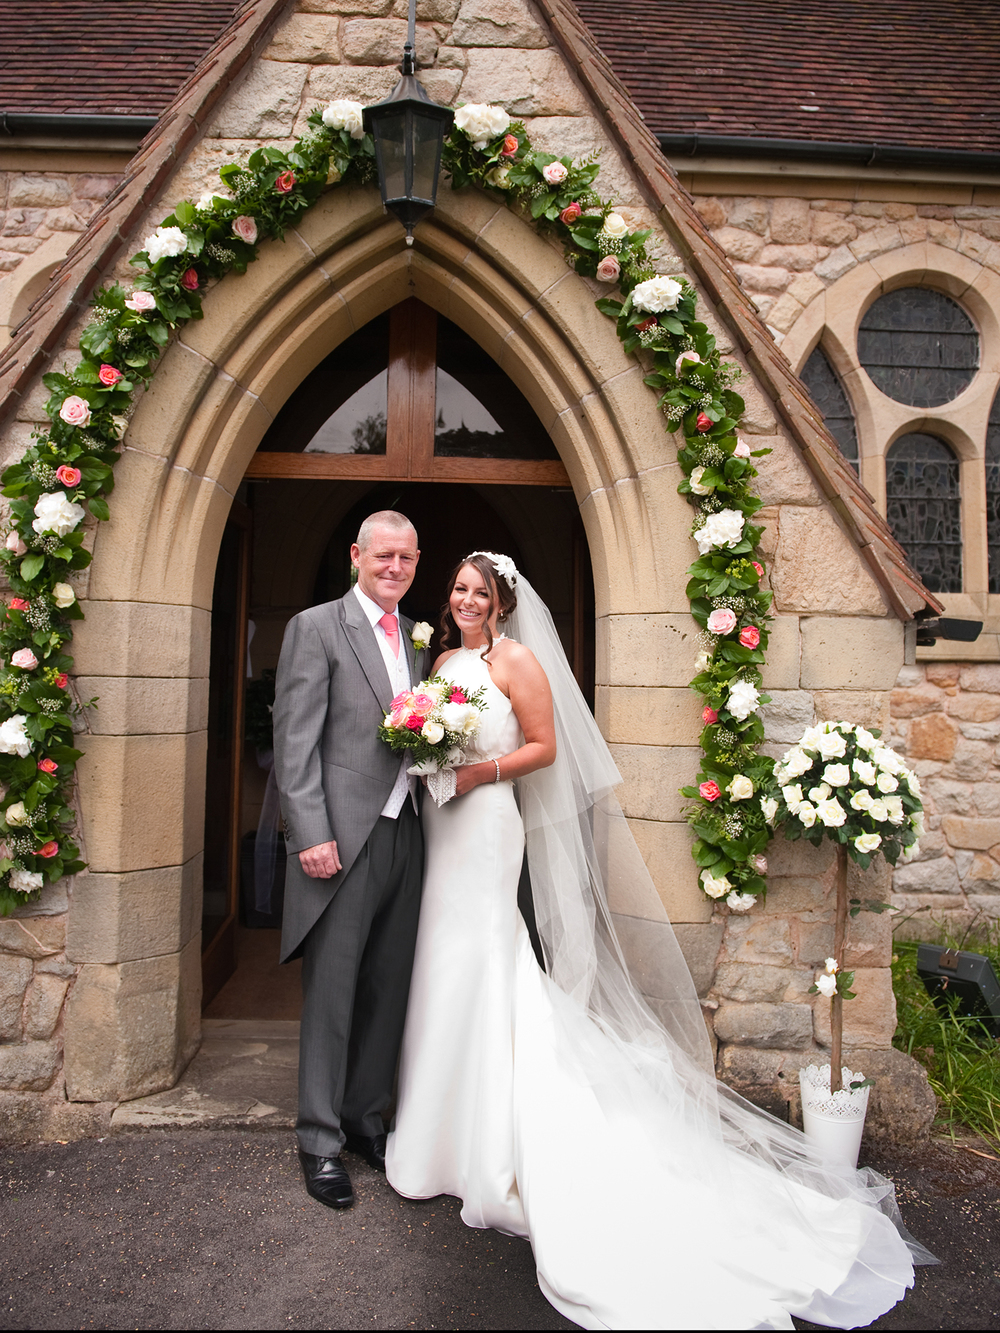 rookery-hall-wedding-weekday-wedding-photos-pink-wedding-details-cheshire-wedding (13)